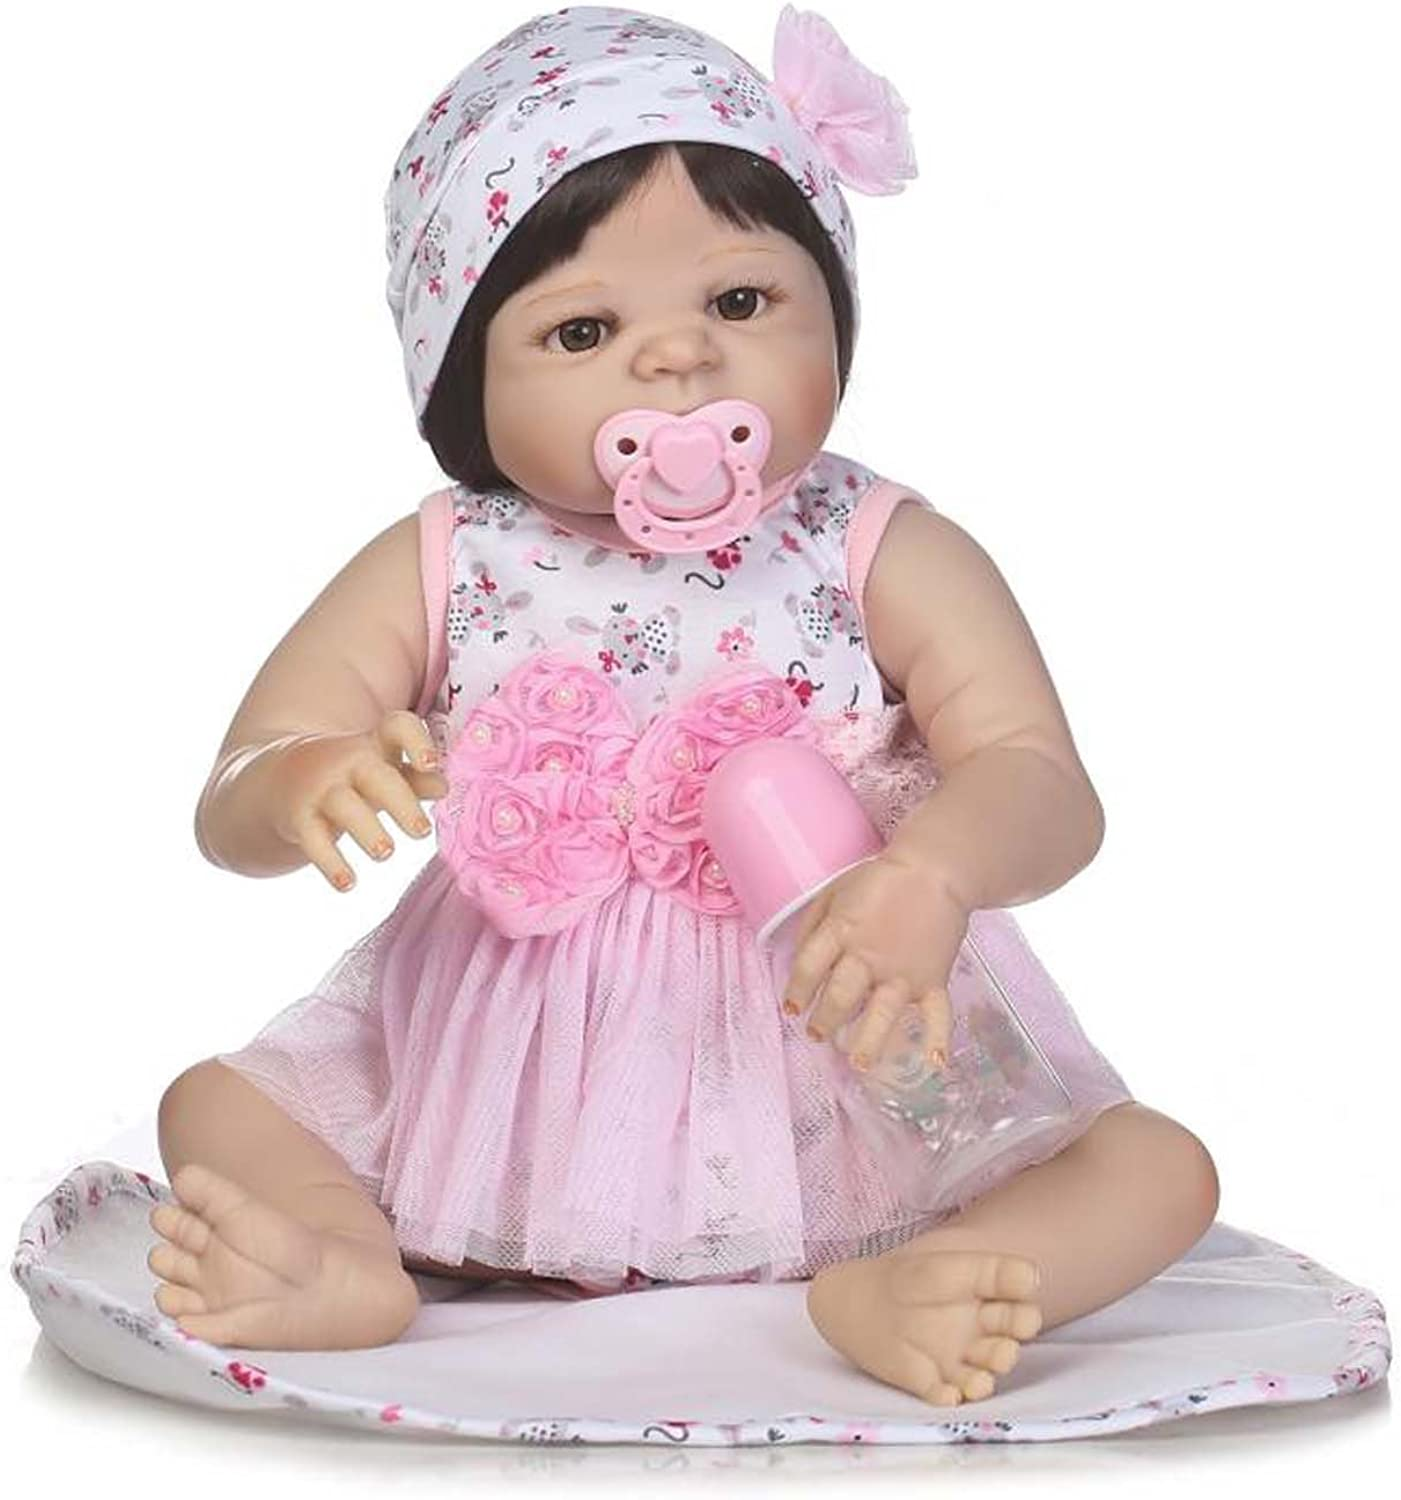 TERABITHIA 56cm Barely Alive Silicone Vinyl Full Body Newborn Baby Girl Dolls with Magnetic Mouth